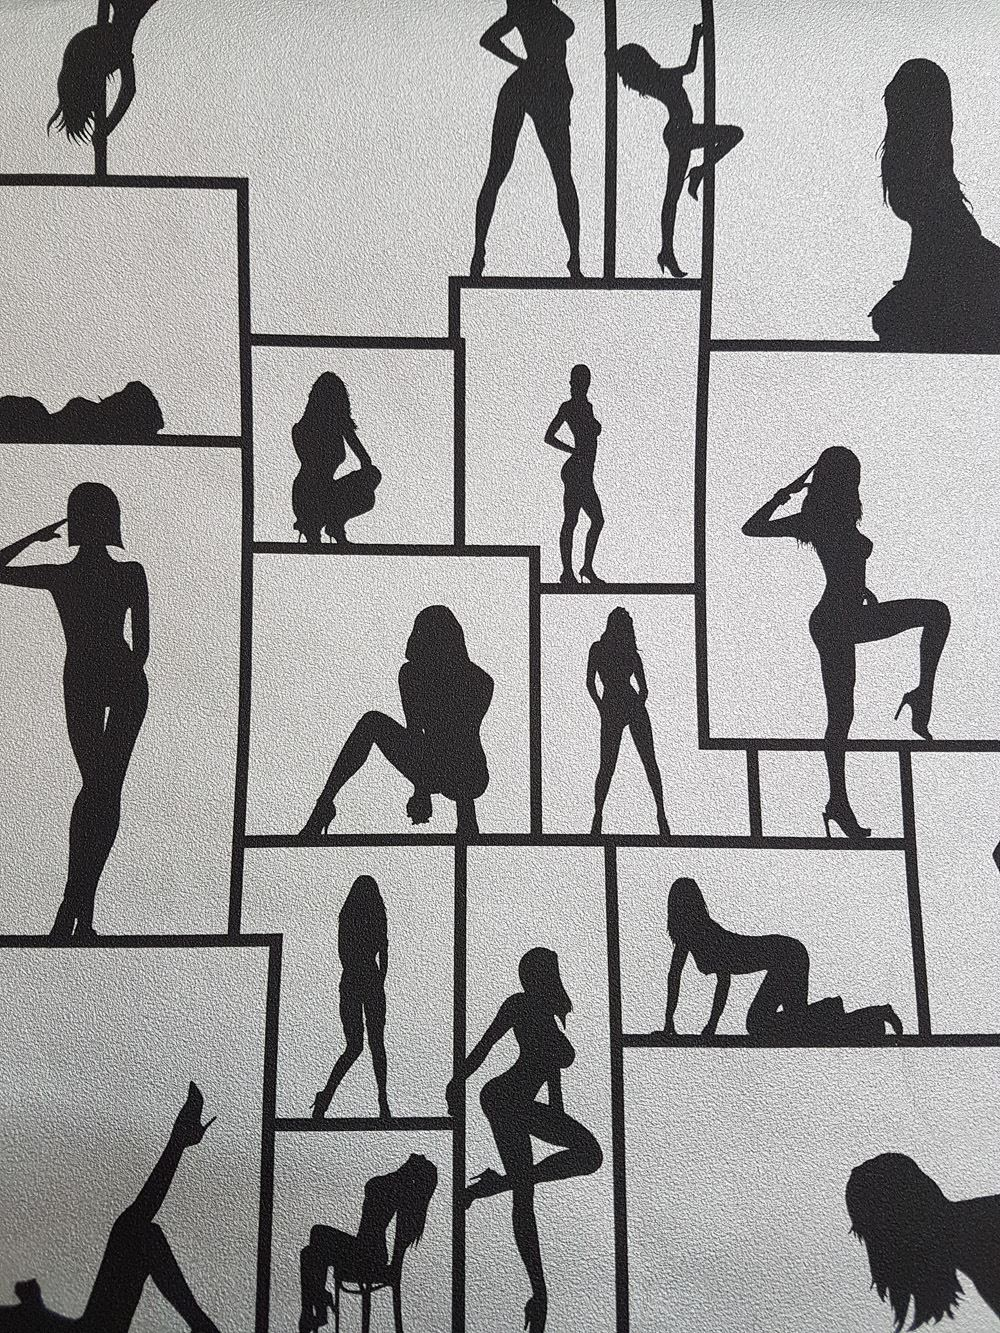 Apologise, but, erotic wallpaper remarkable